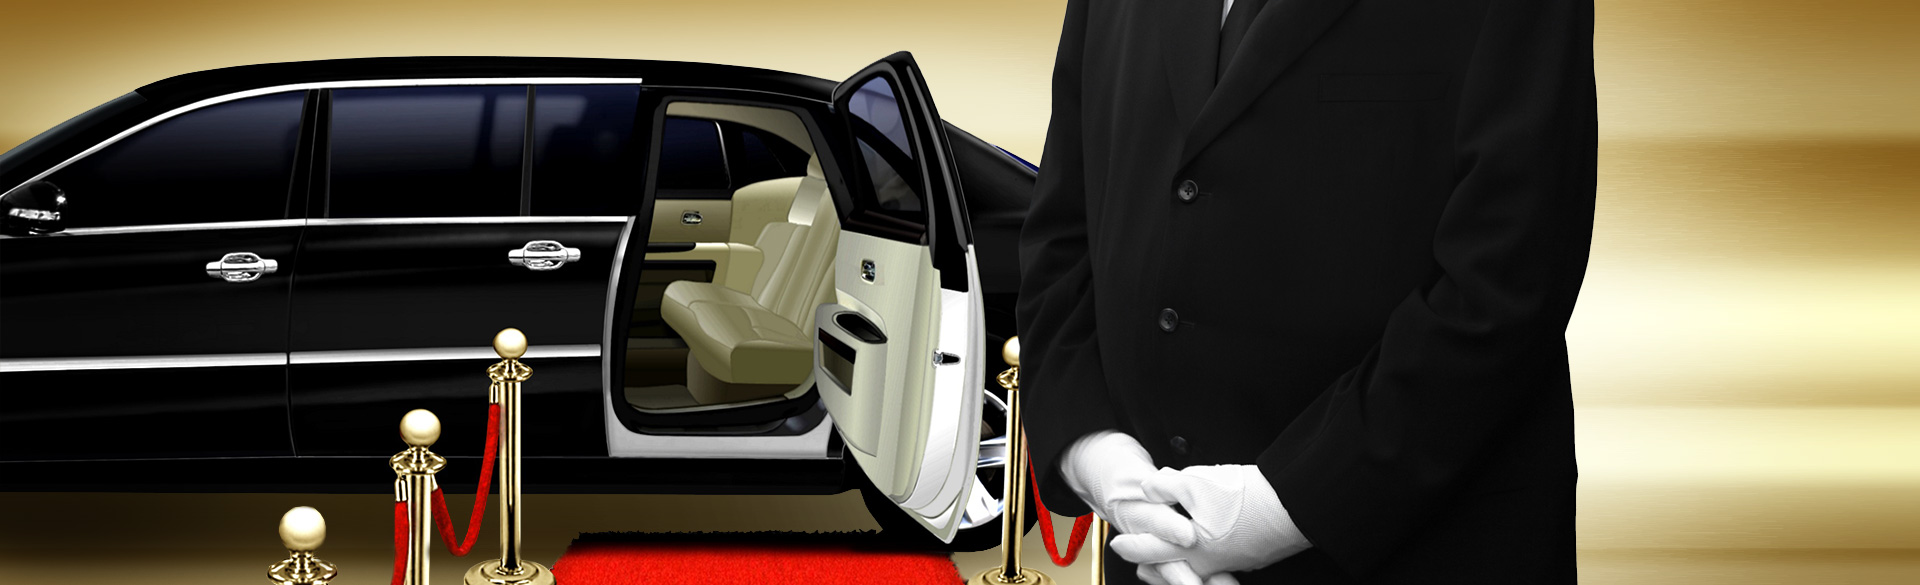 Limousine-Service of Vip Lounge Elegance